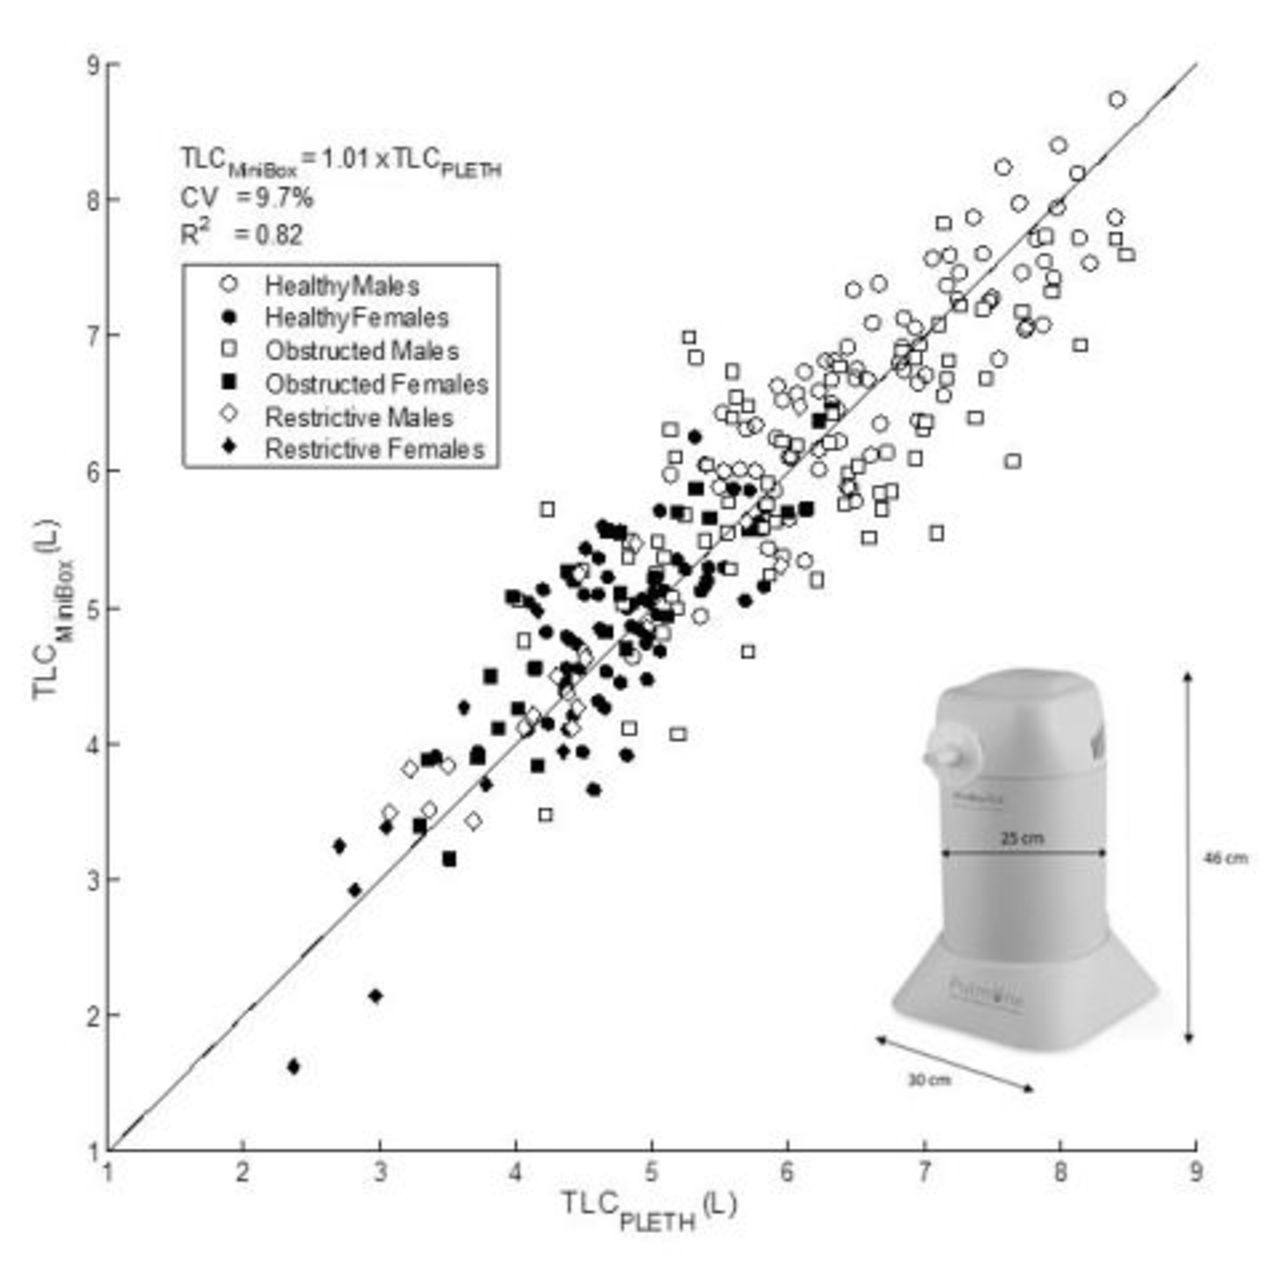 Determination of total lung capacity (TLC) without body